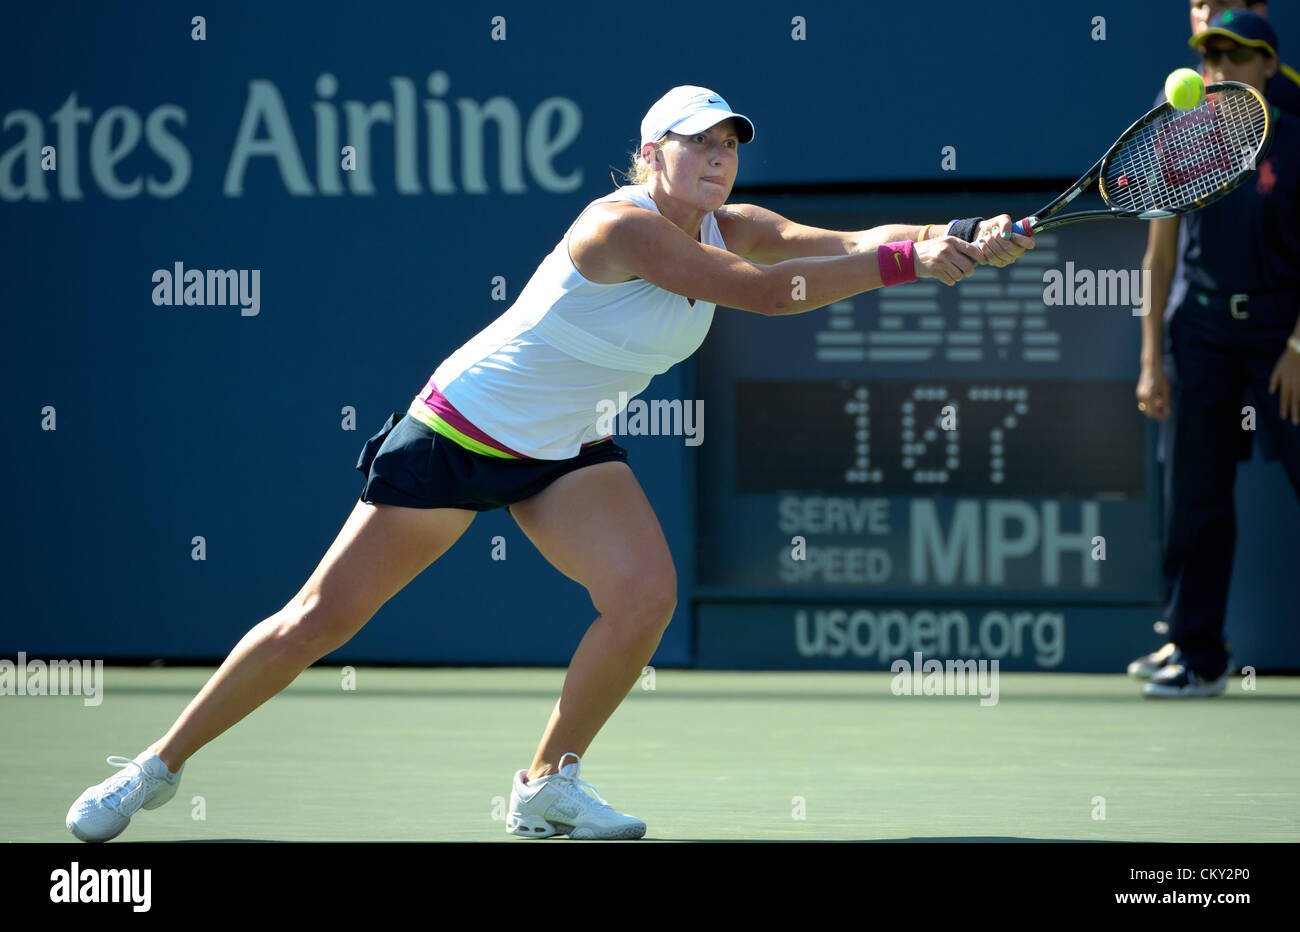 21.08.2012. Flushing Meadows, NY, USA.  Mallory Burdette from the United States (USA) was defeated by Russia's - Stock Image